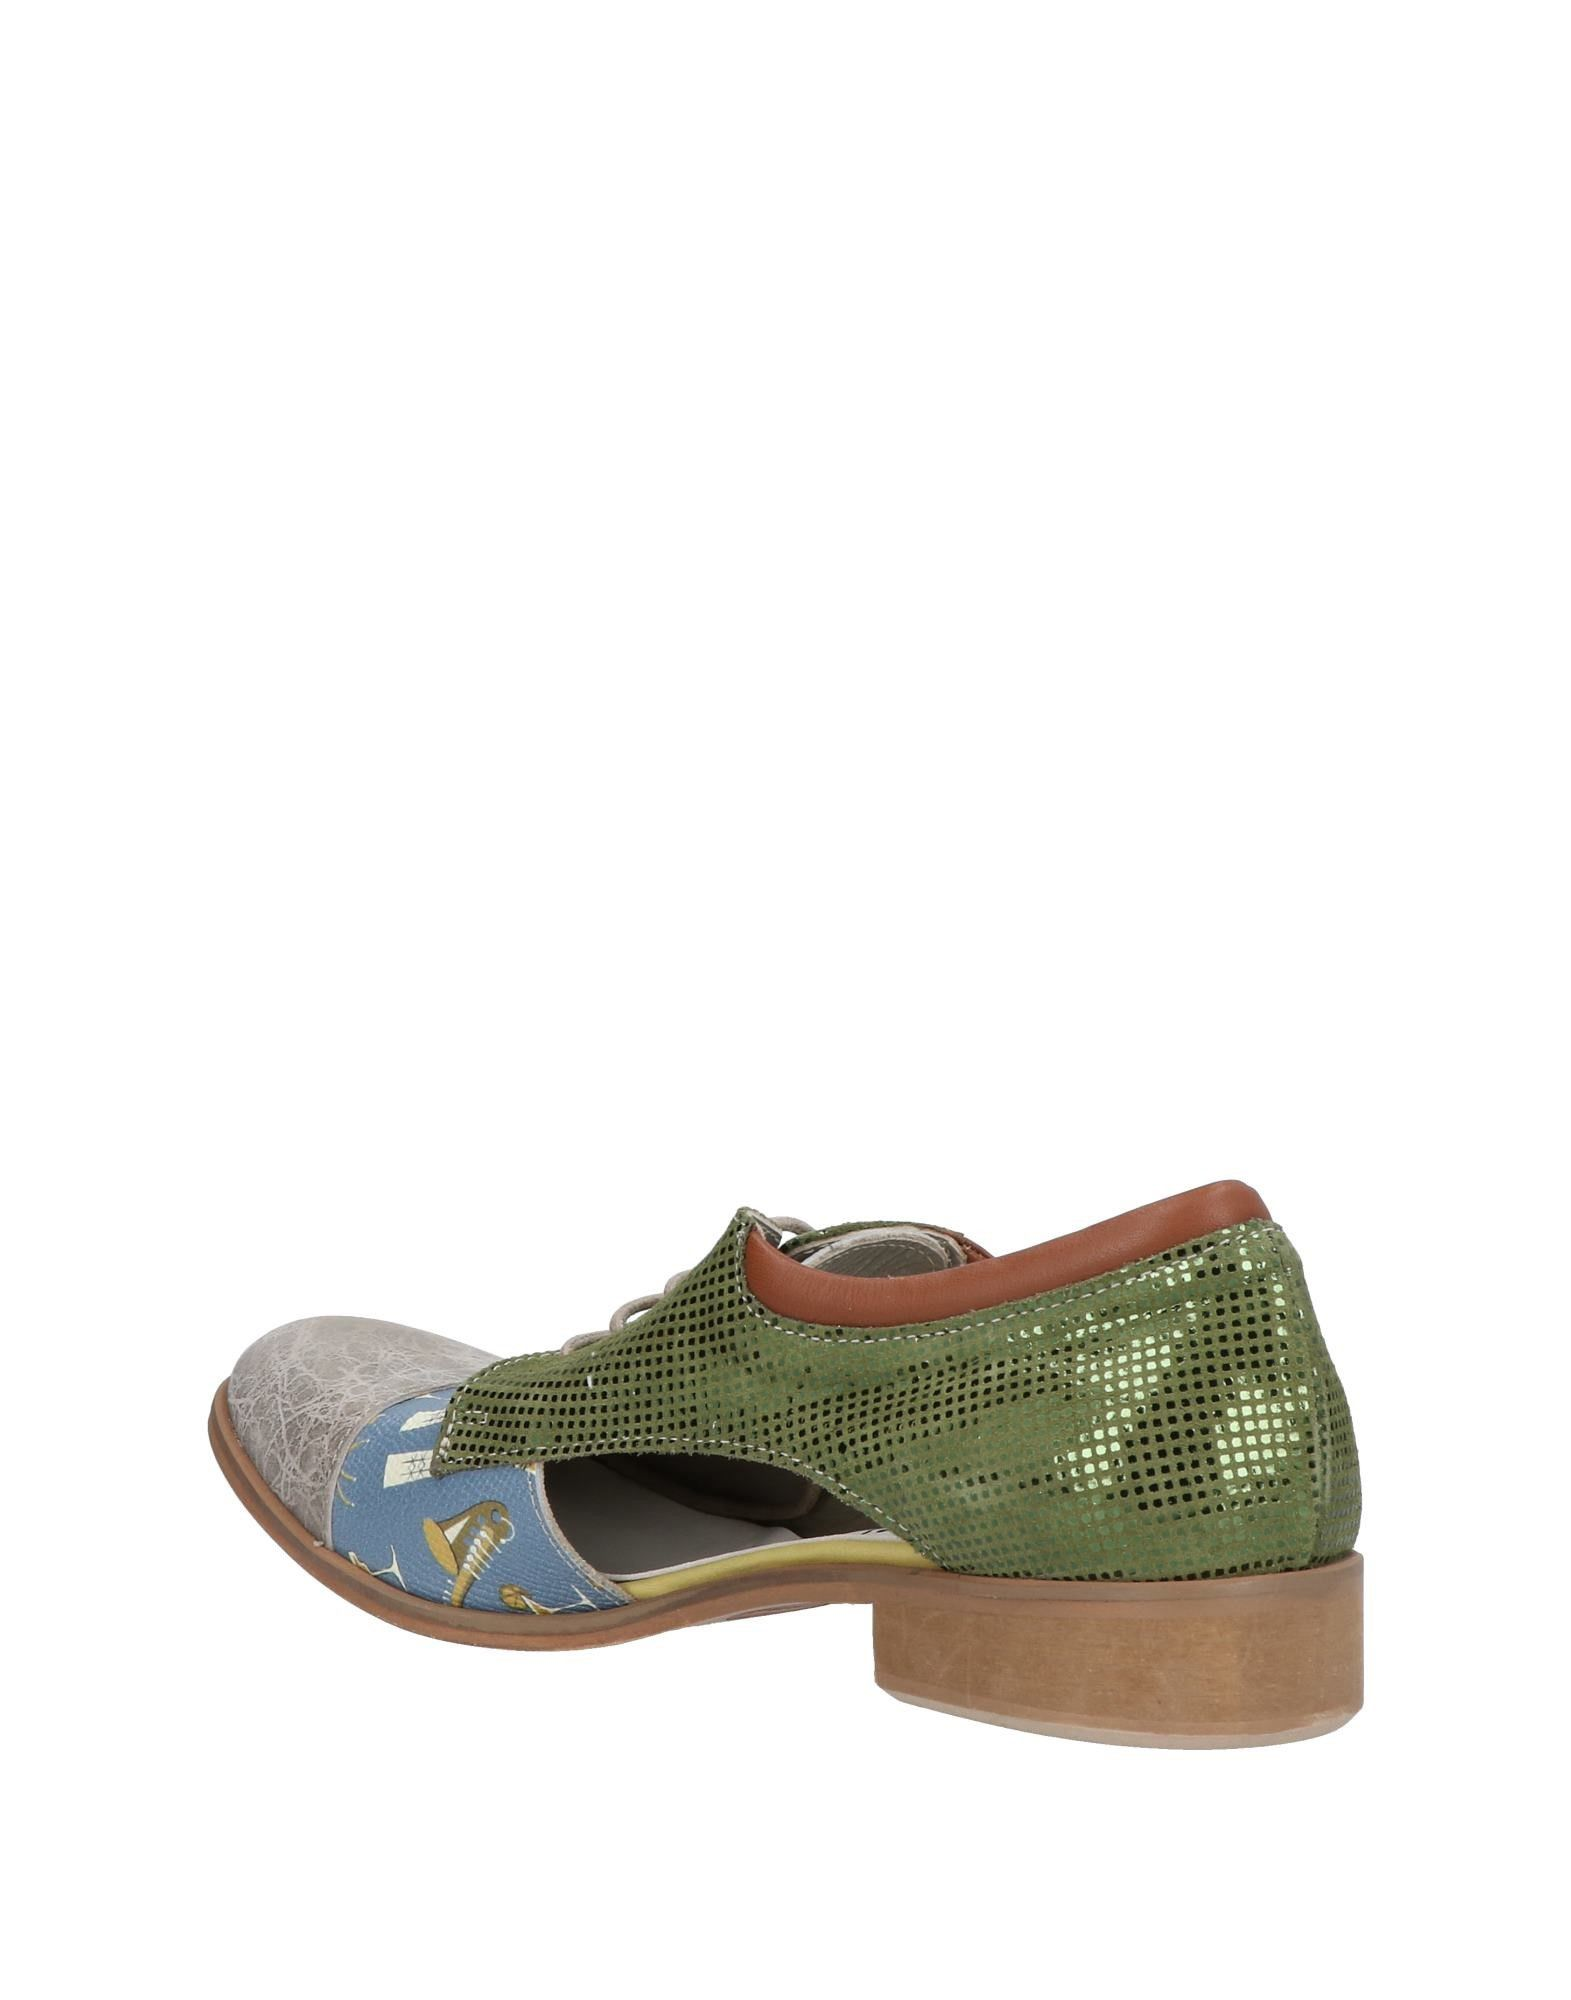 Chaussures À Lacets Ebarrito Femme - Chaussures À Lacets Ebarrito sur